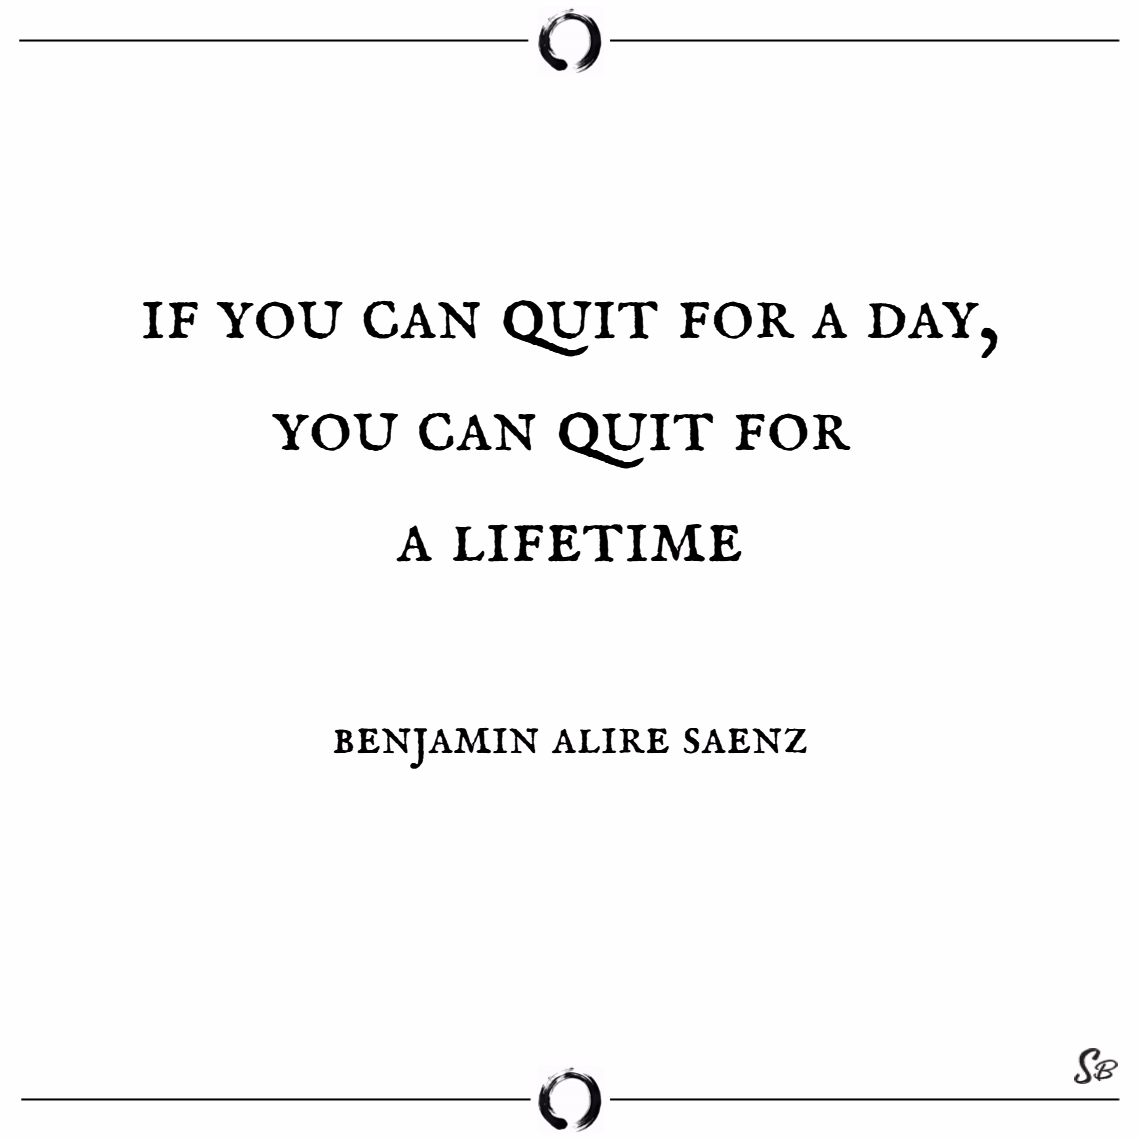 If you can quit for a day, you can quit for a lifetime. – benjamin alire saenz